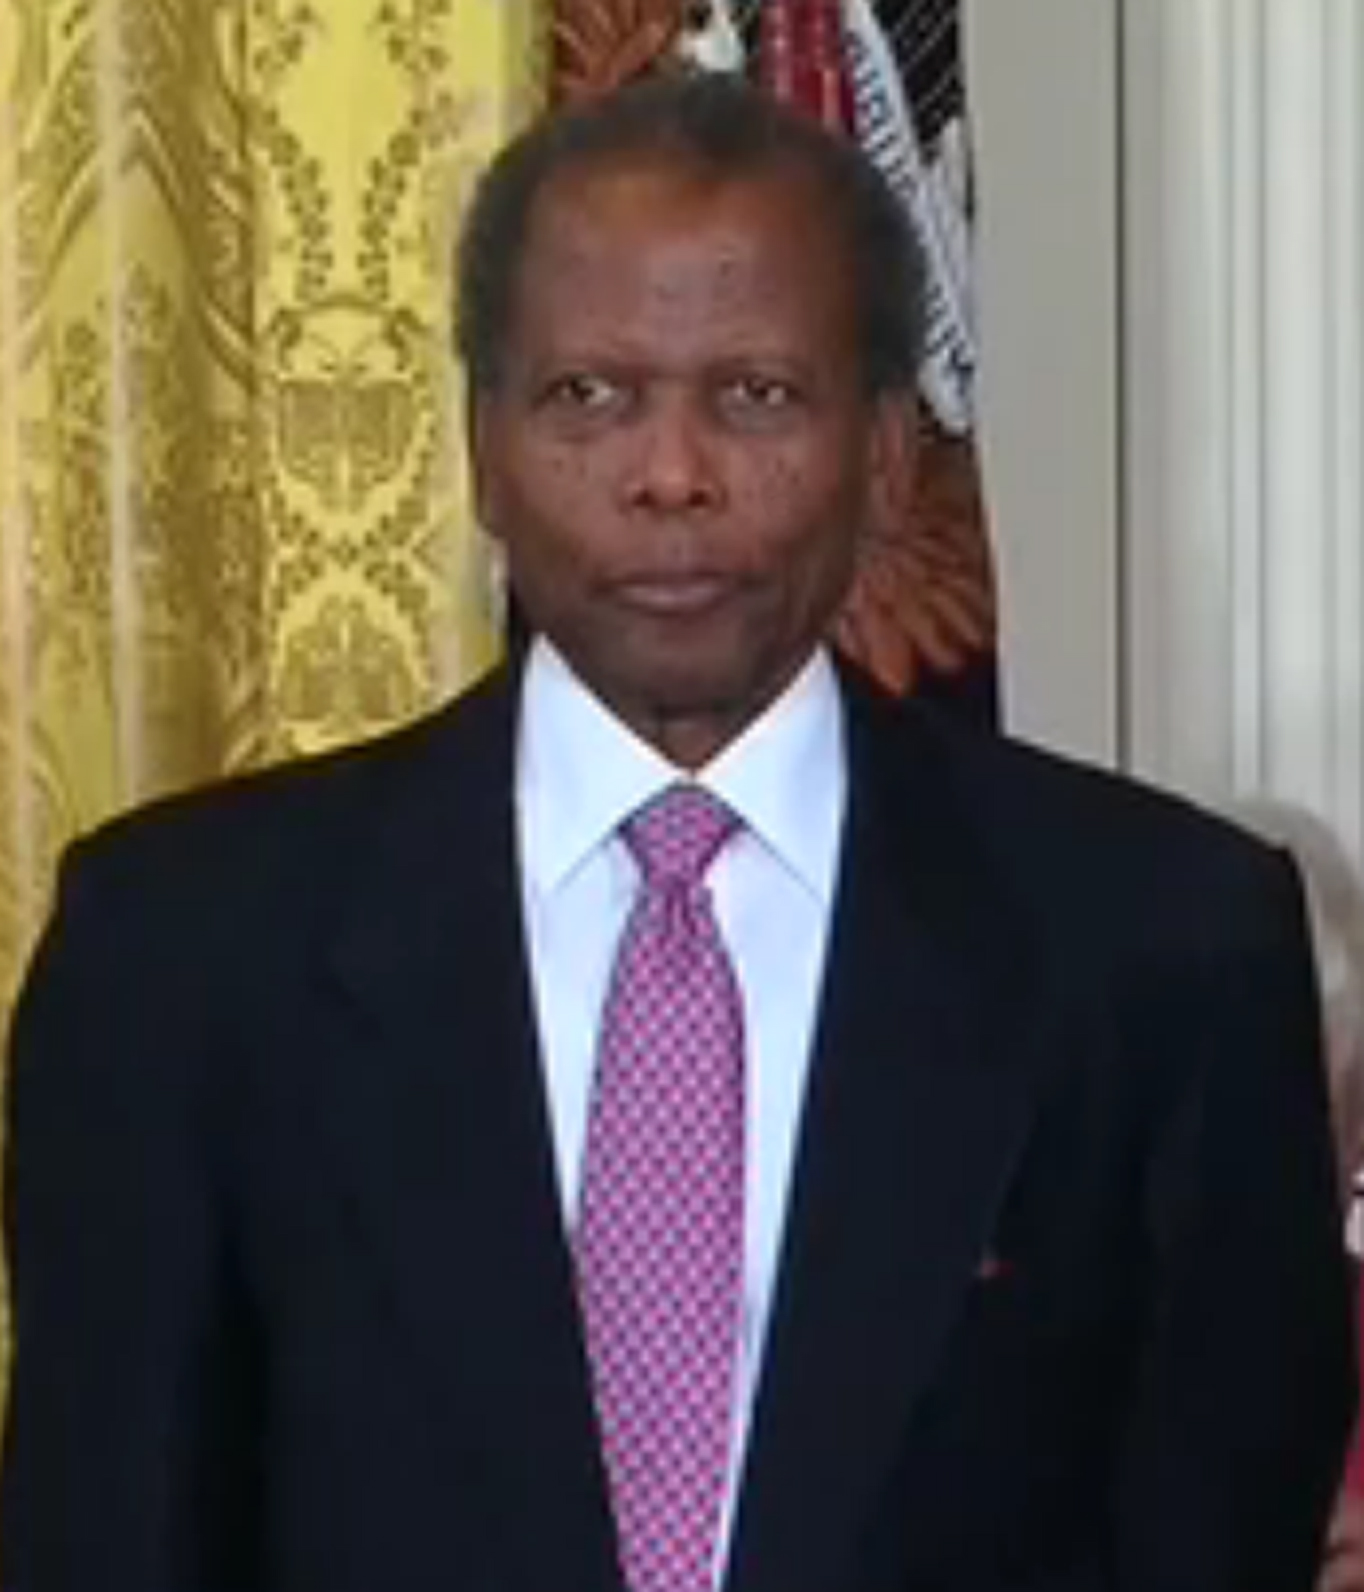 Pictures of Sidney Poitier